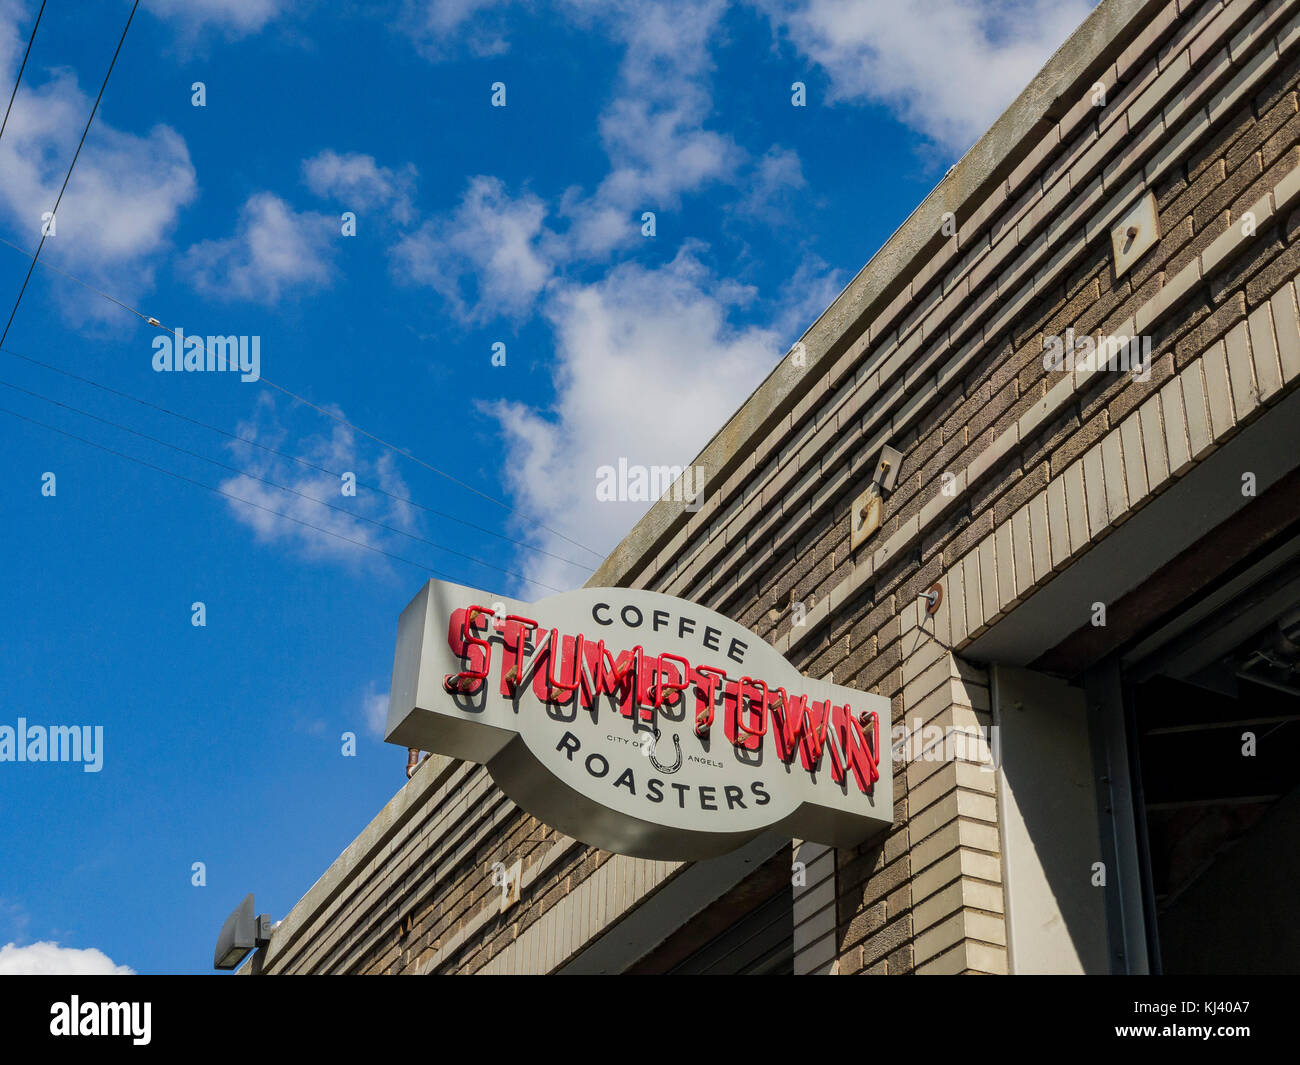 Los Angeles, NOV 5: Exterior sign of the famous Stumptown Coffee on NOV 5, 2017 at Los Angeles, California - Stock Image